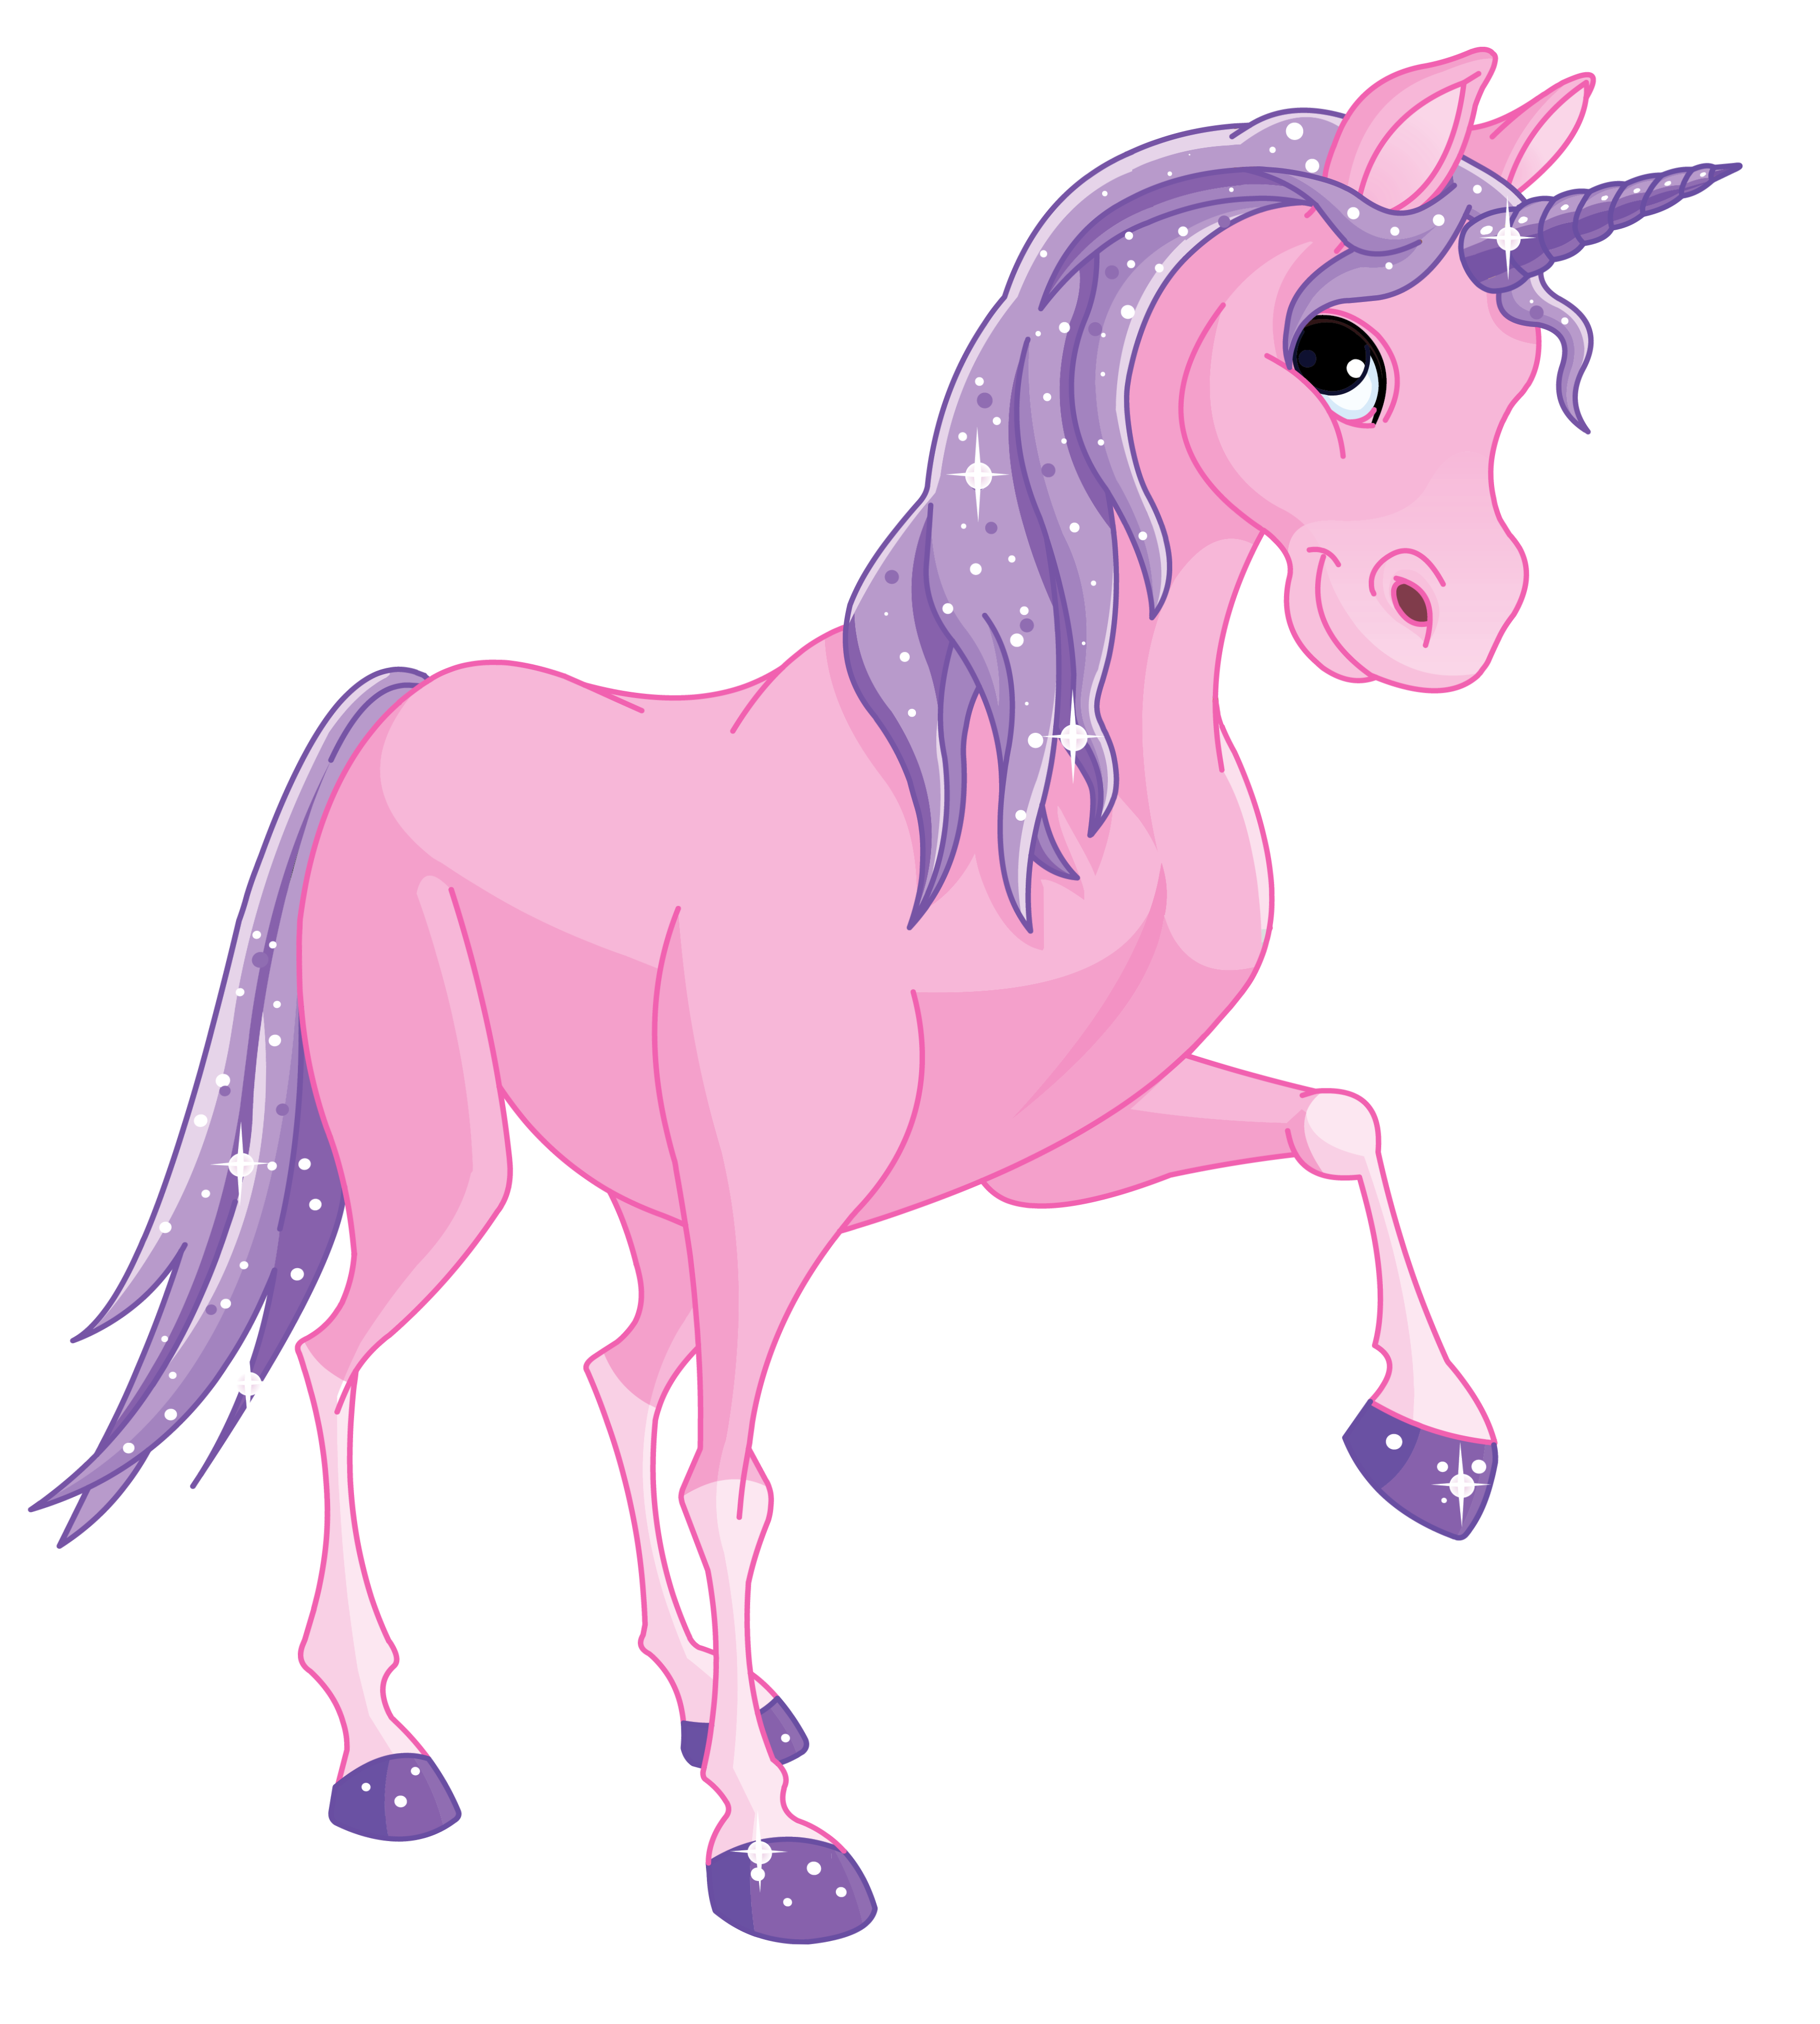 Pink pony unicorns pinterest. Narwhal clipart elf movie